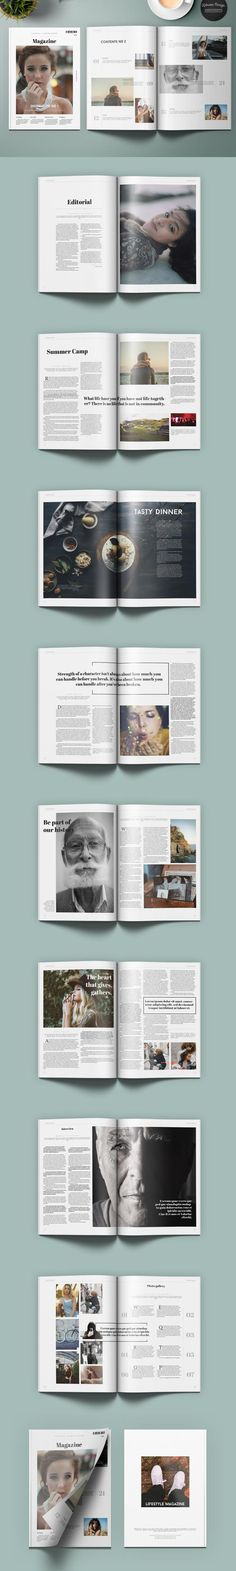 #magazine #design from Kahuna Design | DOWNLOAD: https://creativemarket.com/KahunaDesign/530020-Lifestyle-Universal-Magazine?u=zsoltczigler